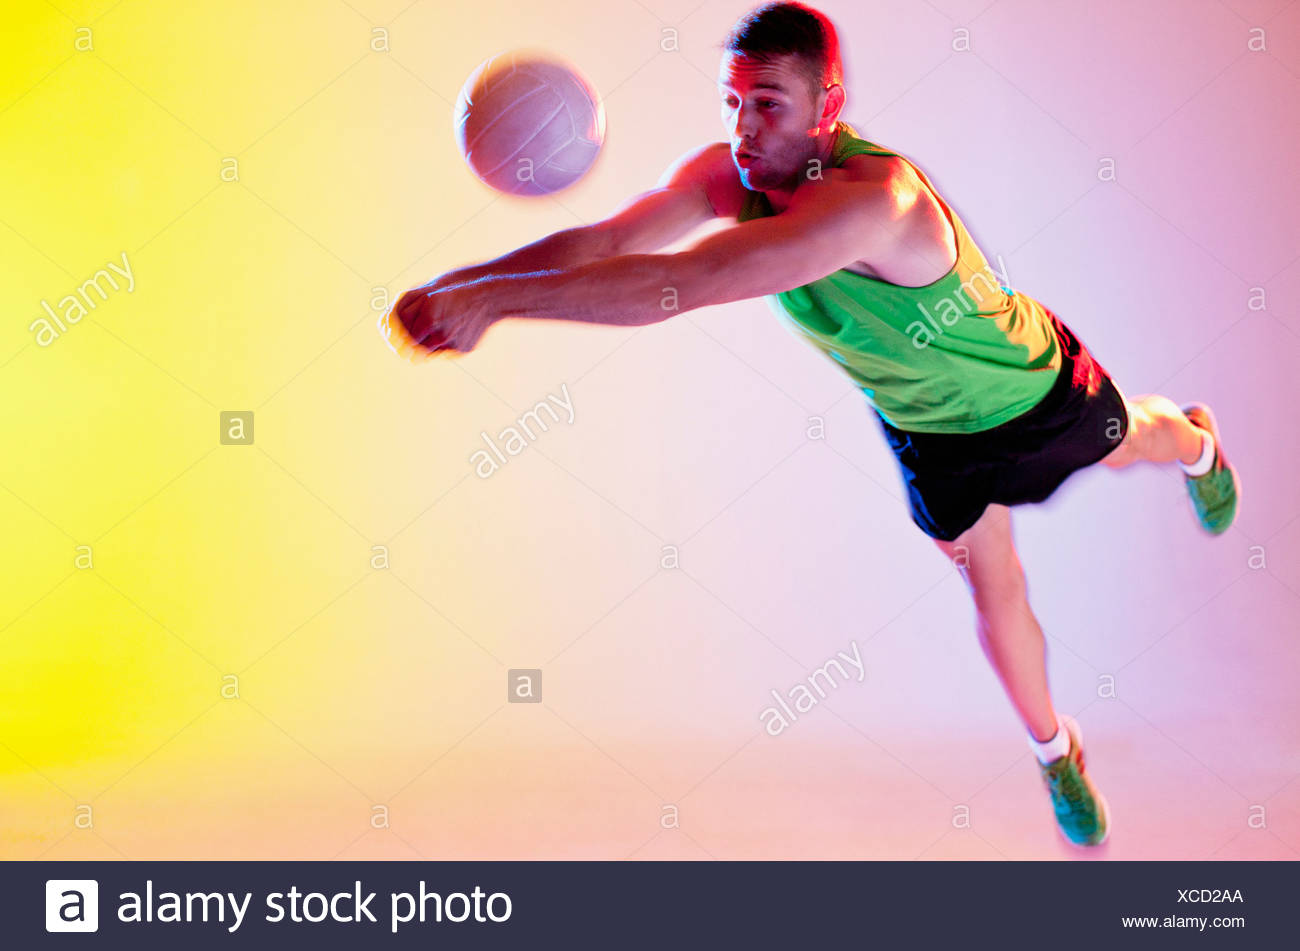 Volleyball player spiking ball - Stock Image